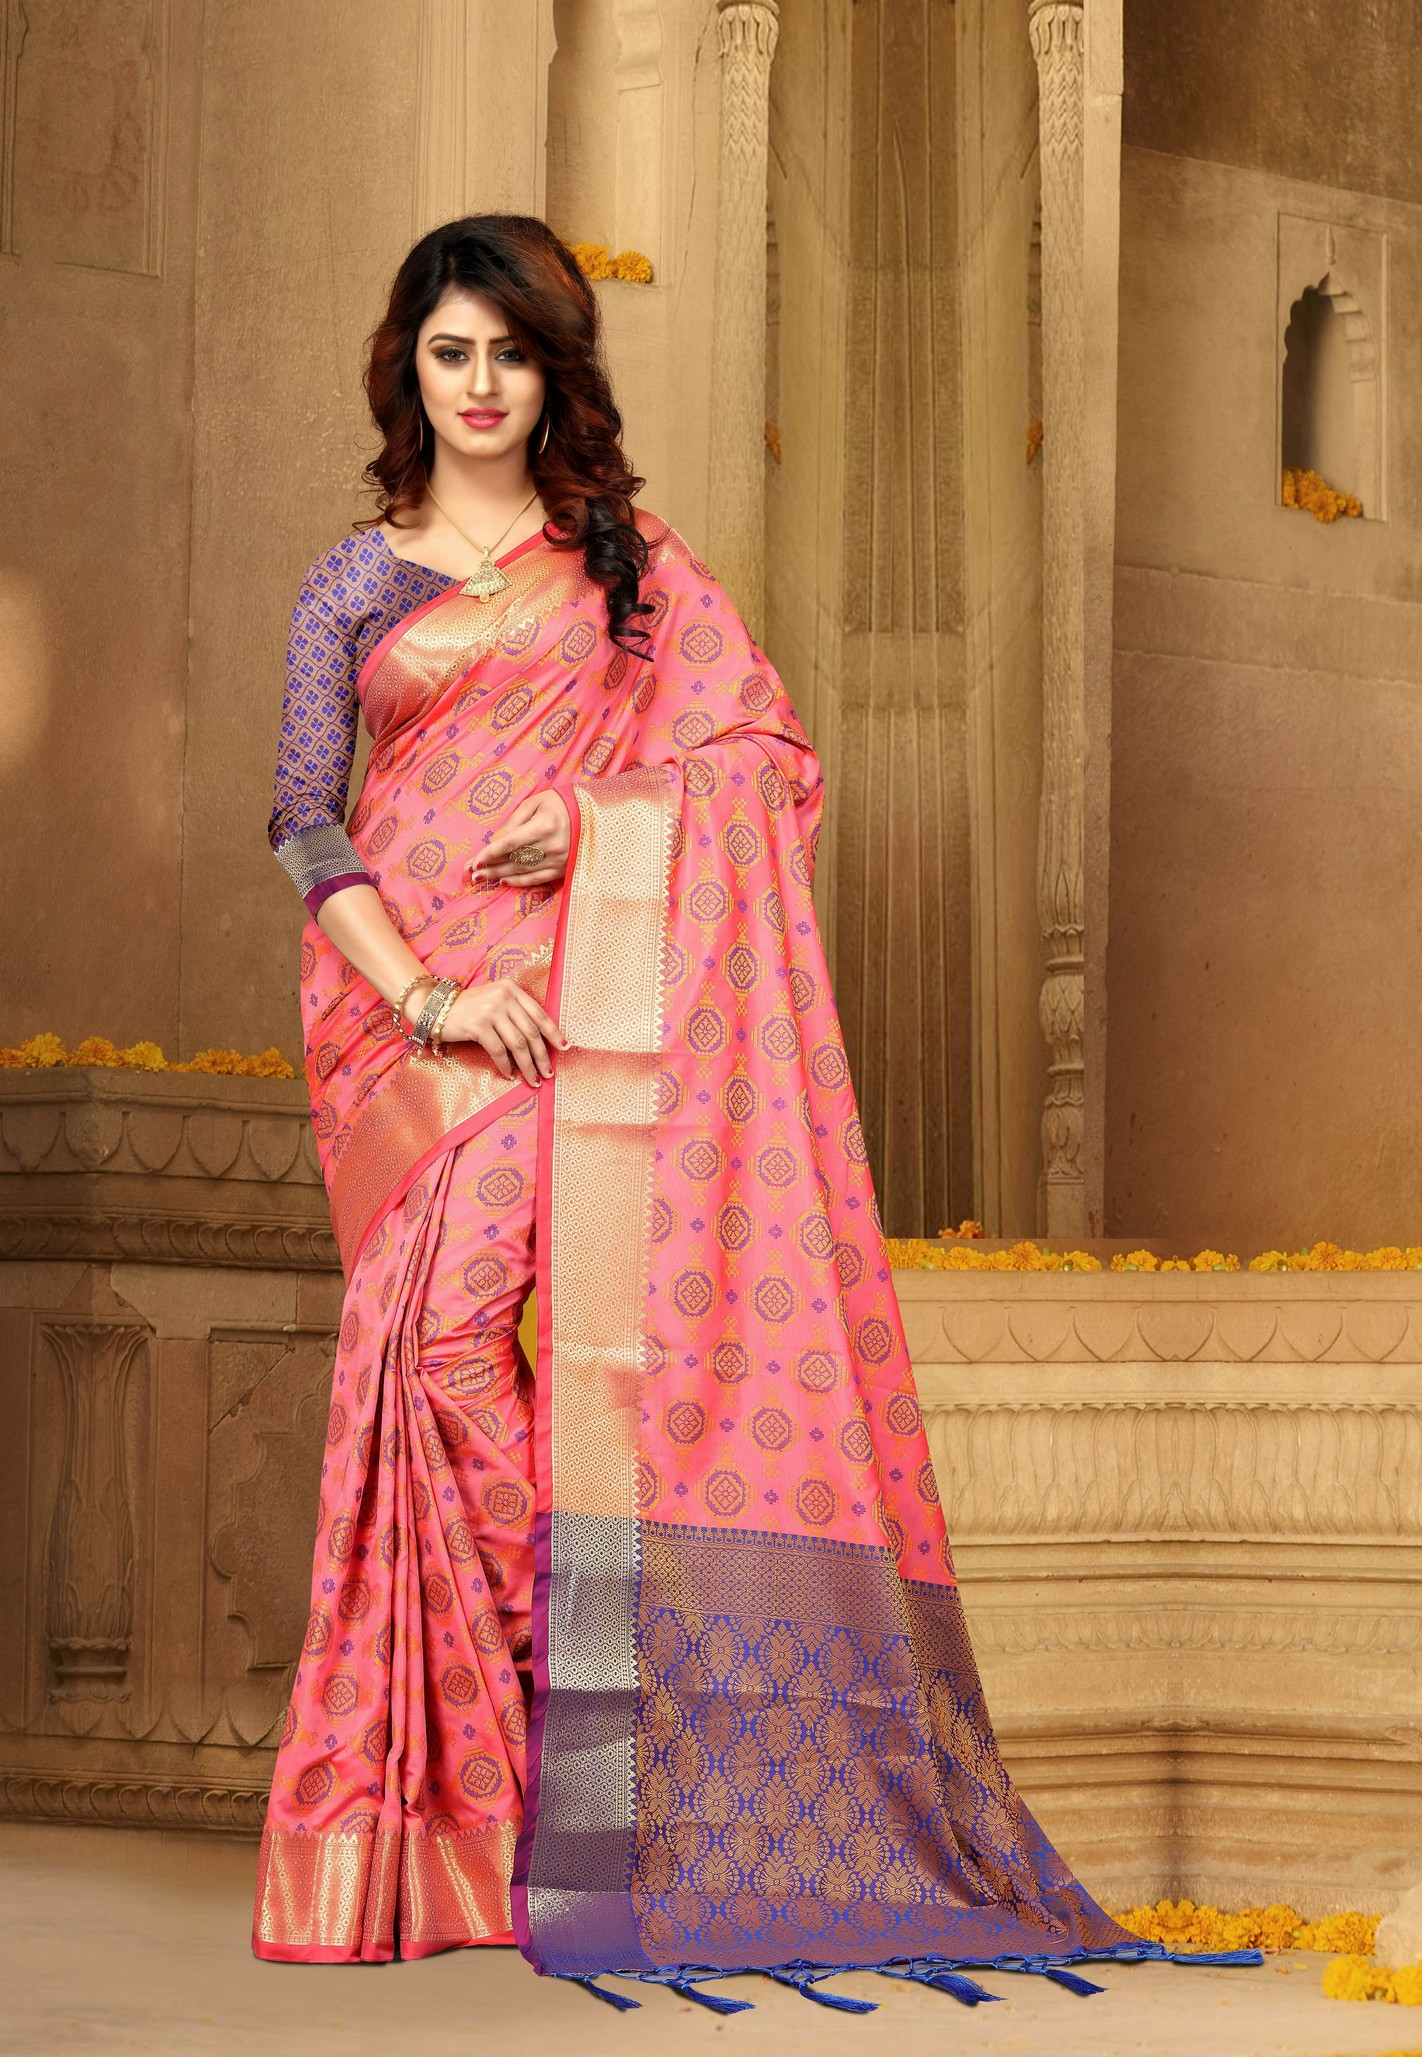 a12d421e8bae2d Light Pink colour Patola Heavy Banarasi Silk Saree with unstitched blouse -  Disha - 2626679